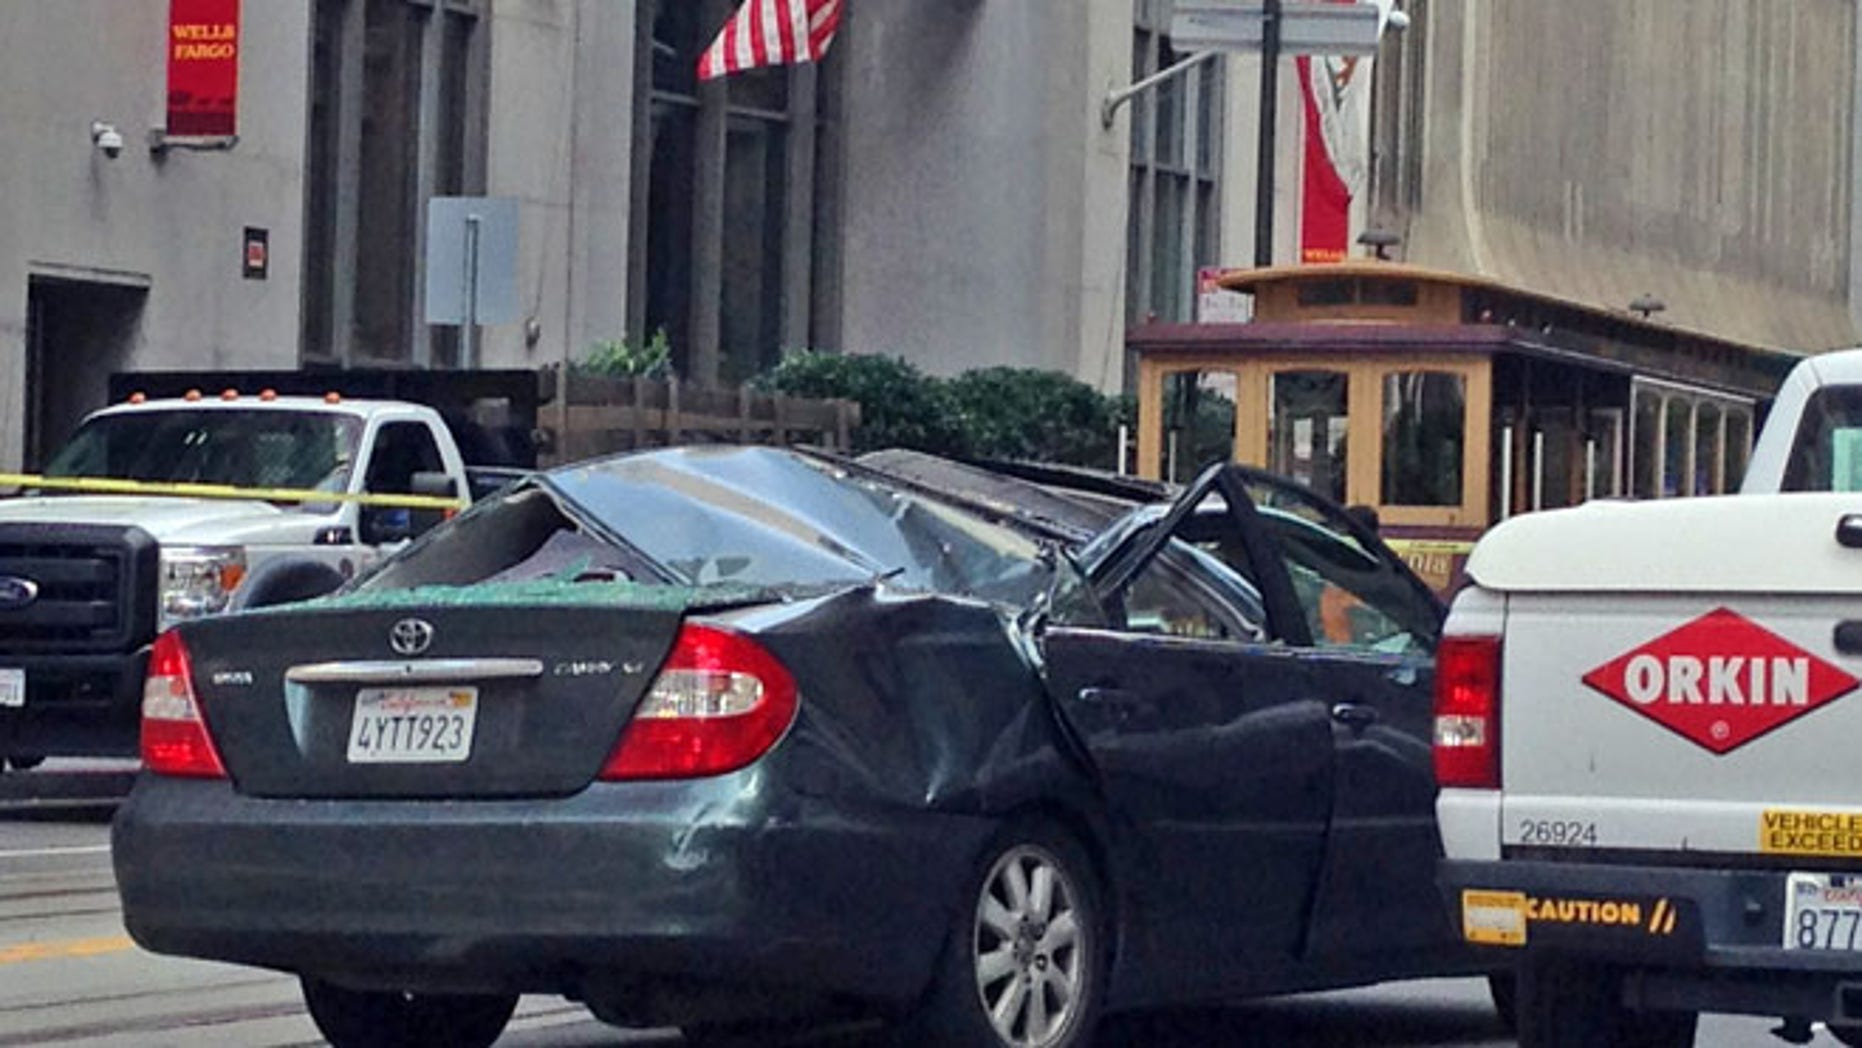 Nov. 21, 2014: A Toyota Camry has a caved in roof after a window washer fell at least 11 stories onto the moving vehicle in San Francisco. (AP)